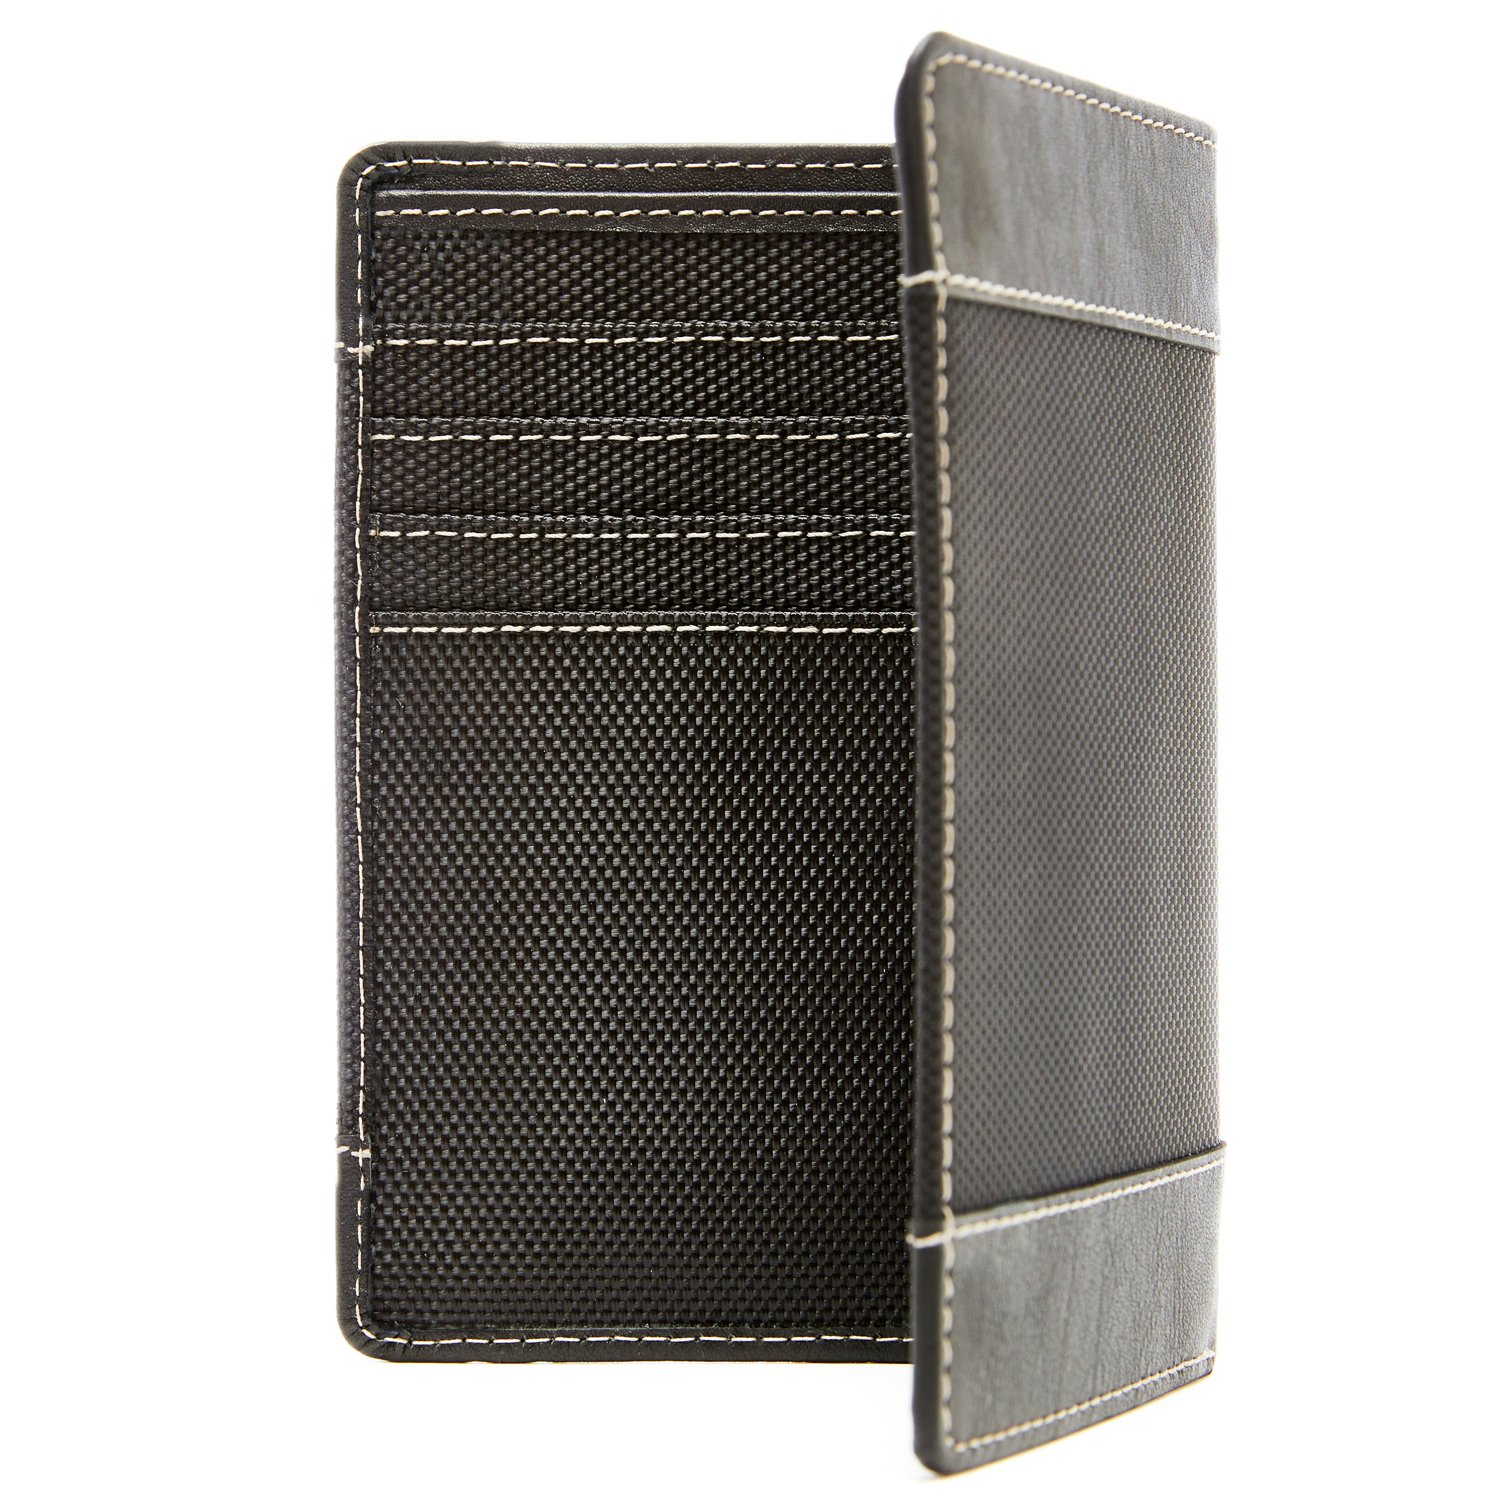 Passport Holder Cover RFID Blocking - Leather Travel Wallet Credit Card Organizer by Access Denied (Image #8)